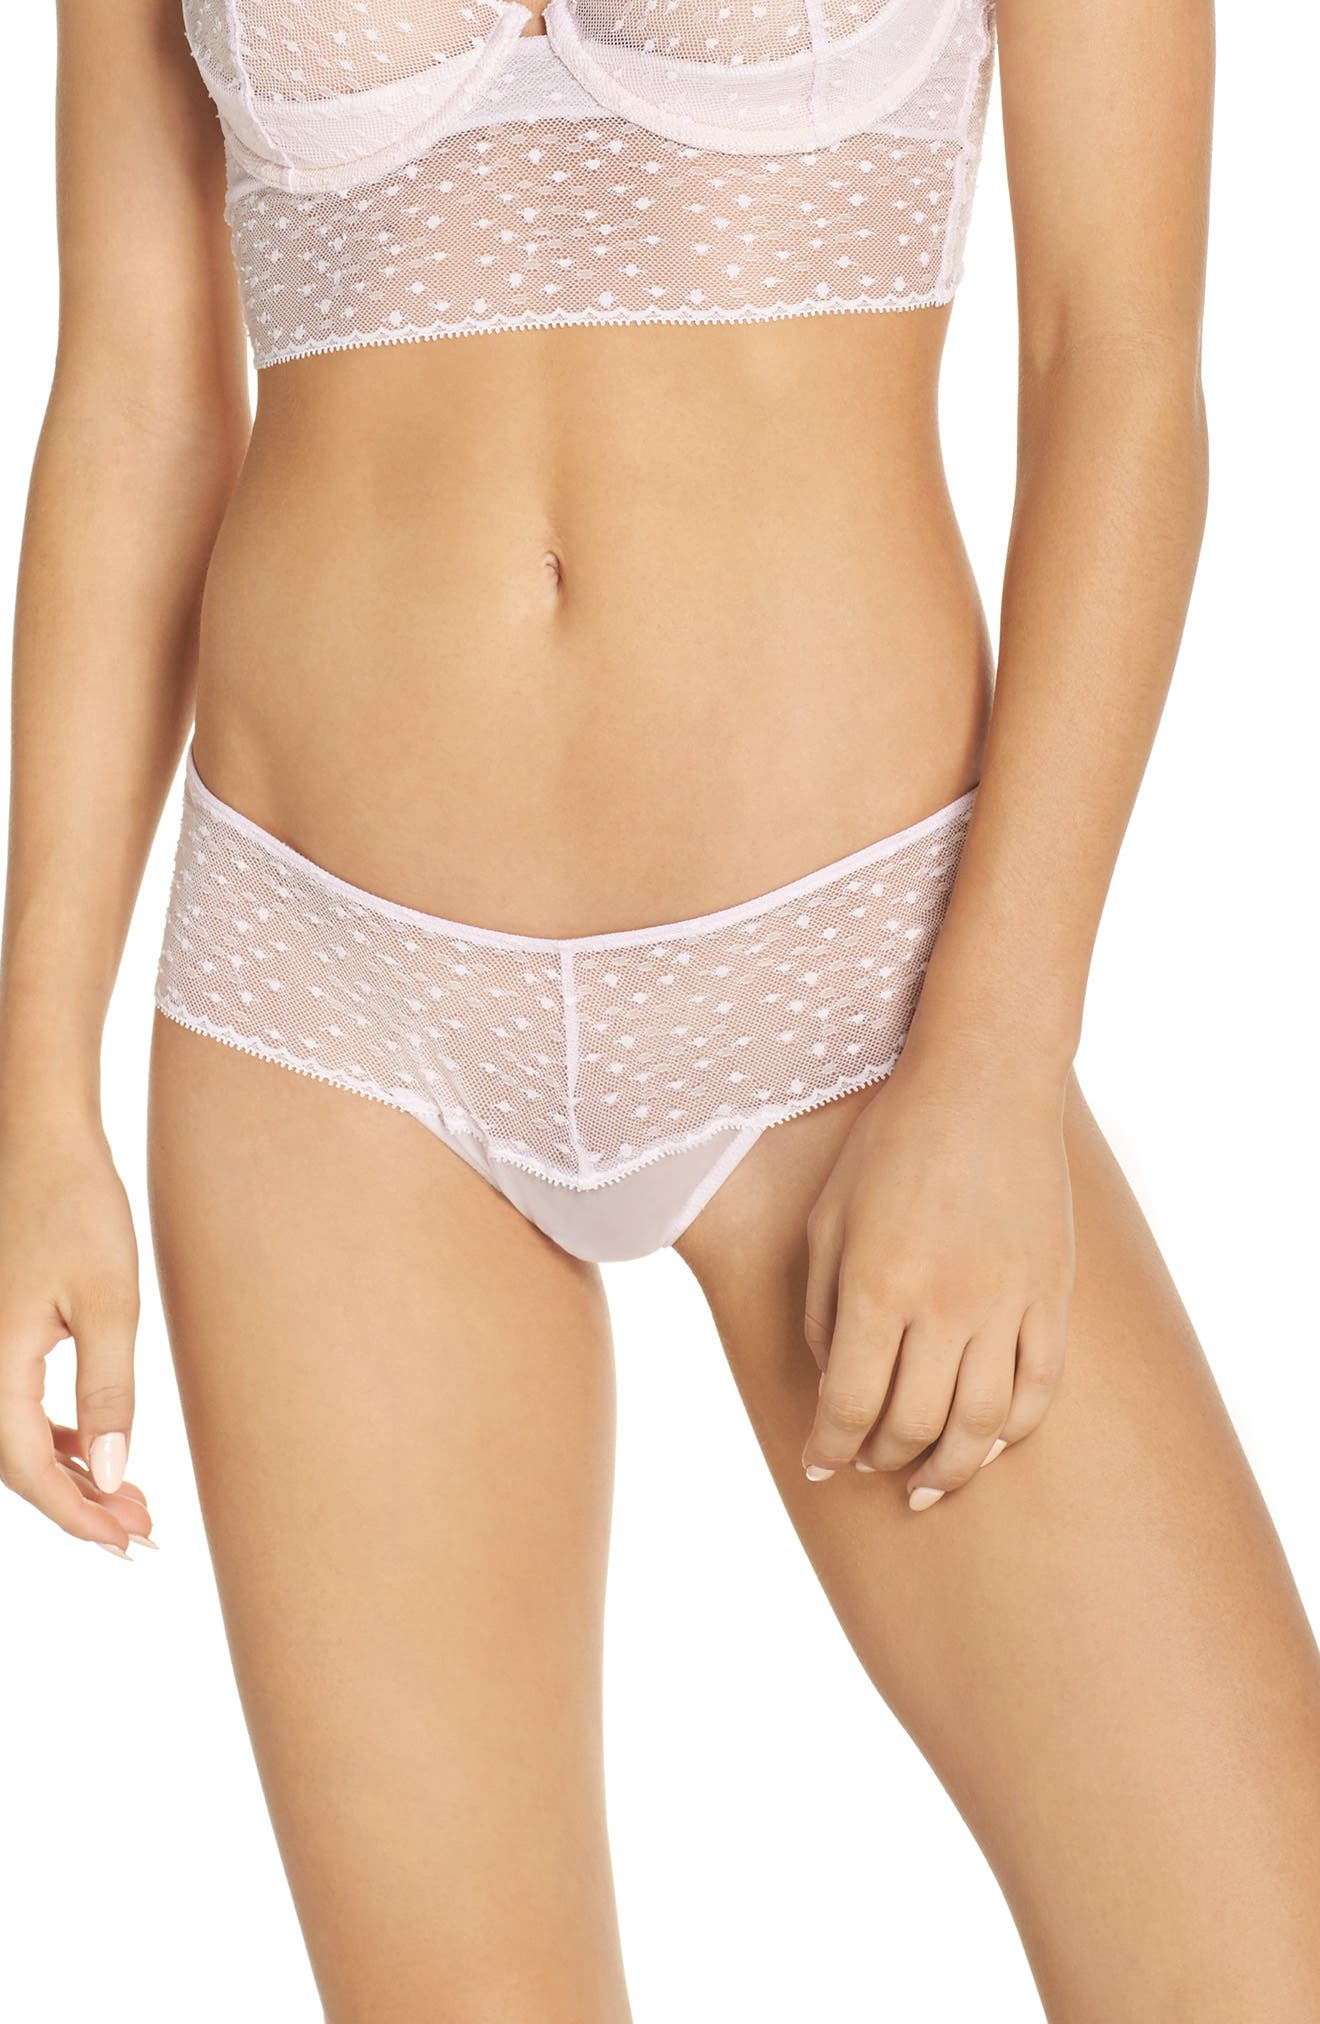 Decoy Cheeky Hipster Briefs,                             Main thumbnail 1, color,                             Light Hearted